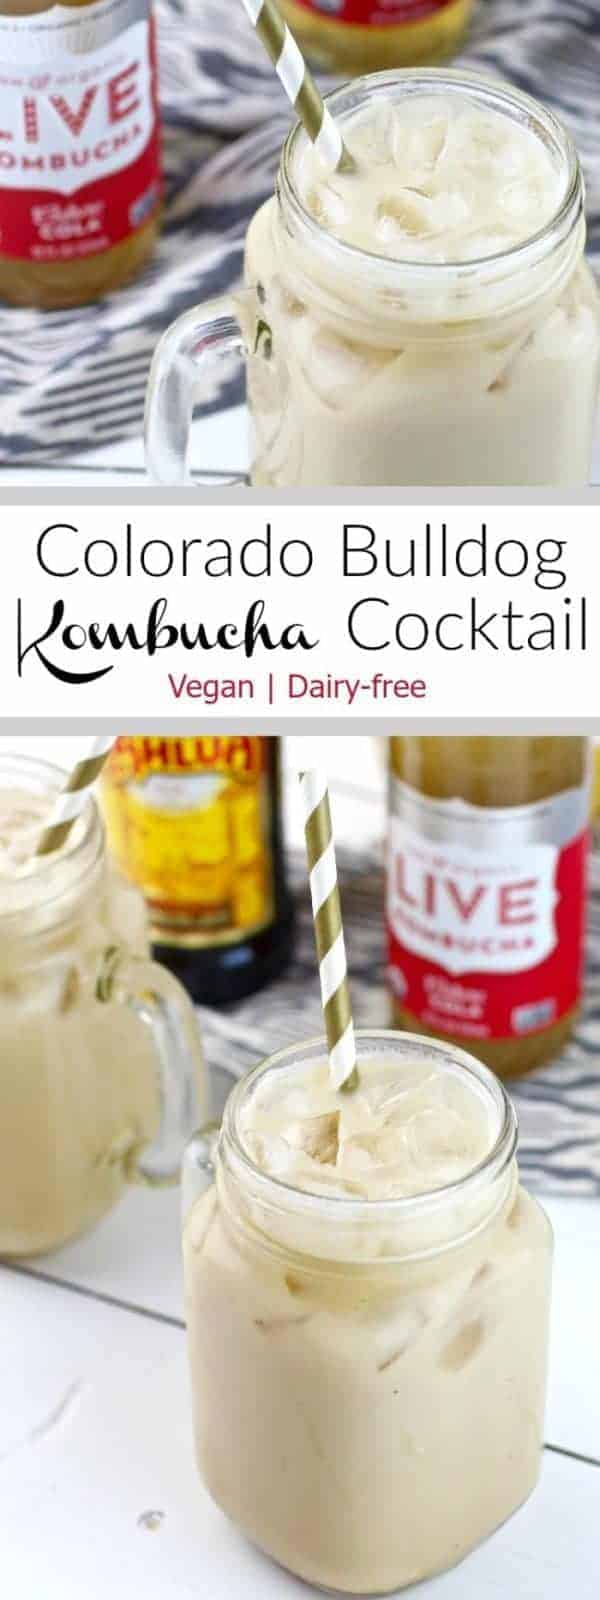 LIVE Kombucha Culture Cola replaces regular cola in this Colorado Bulldog Cocktail! You can now enjoy this classic cocktail without all of the added sugar!